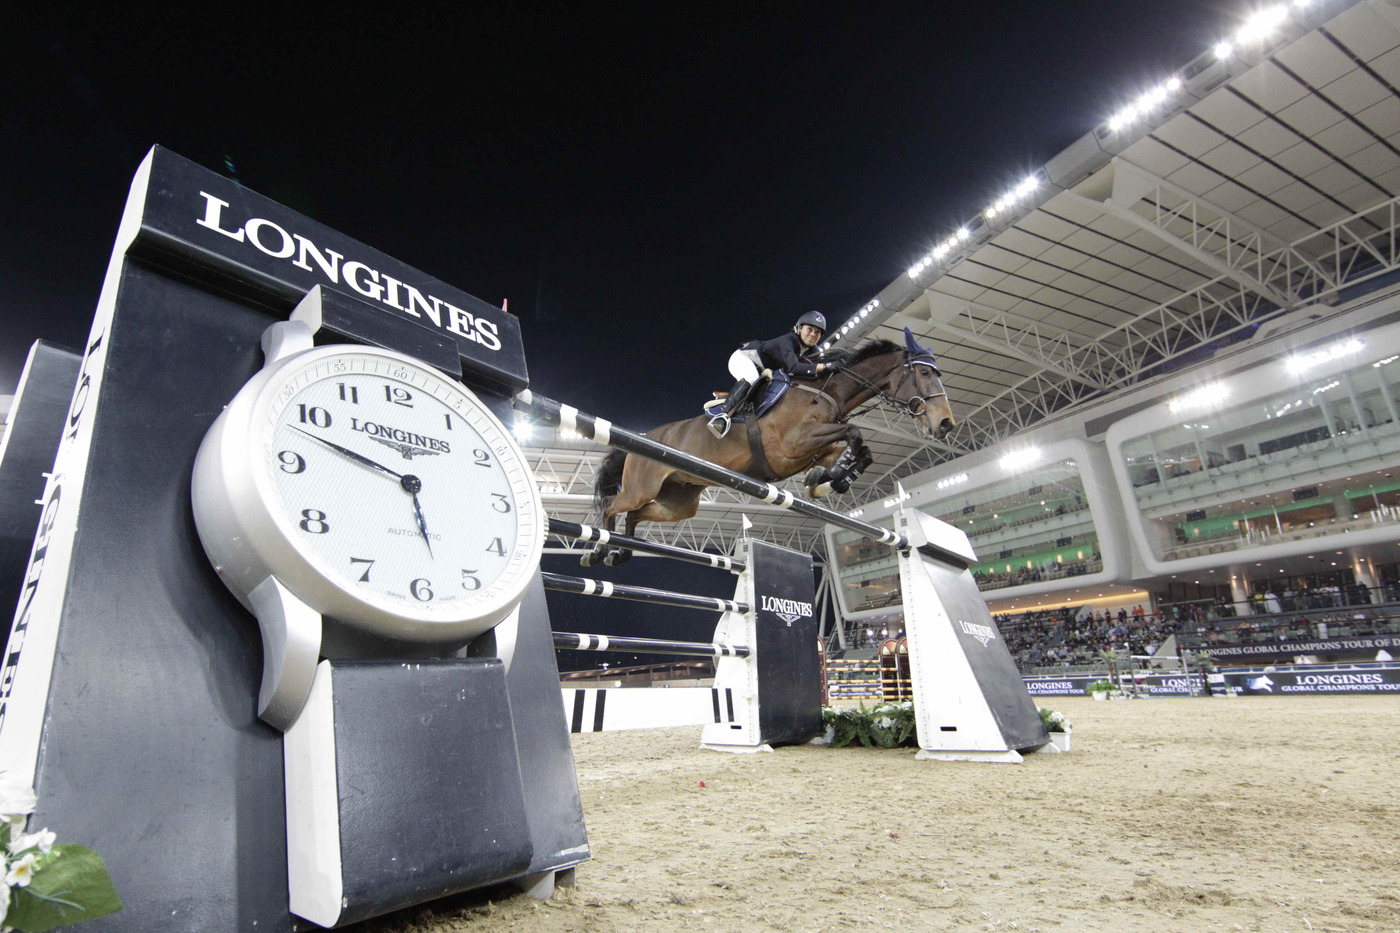 Longines Show Jumping Event: The Longines Global Champions Tour 2013 – A thrilling finale in Doha 6